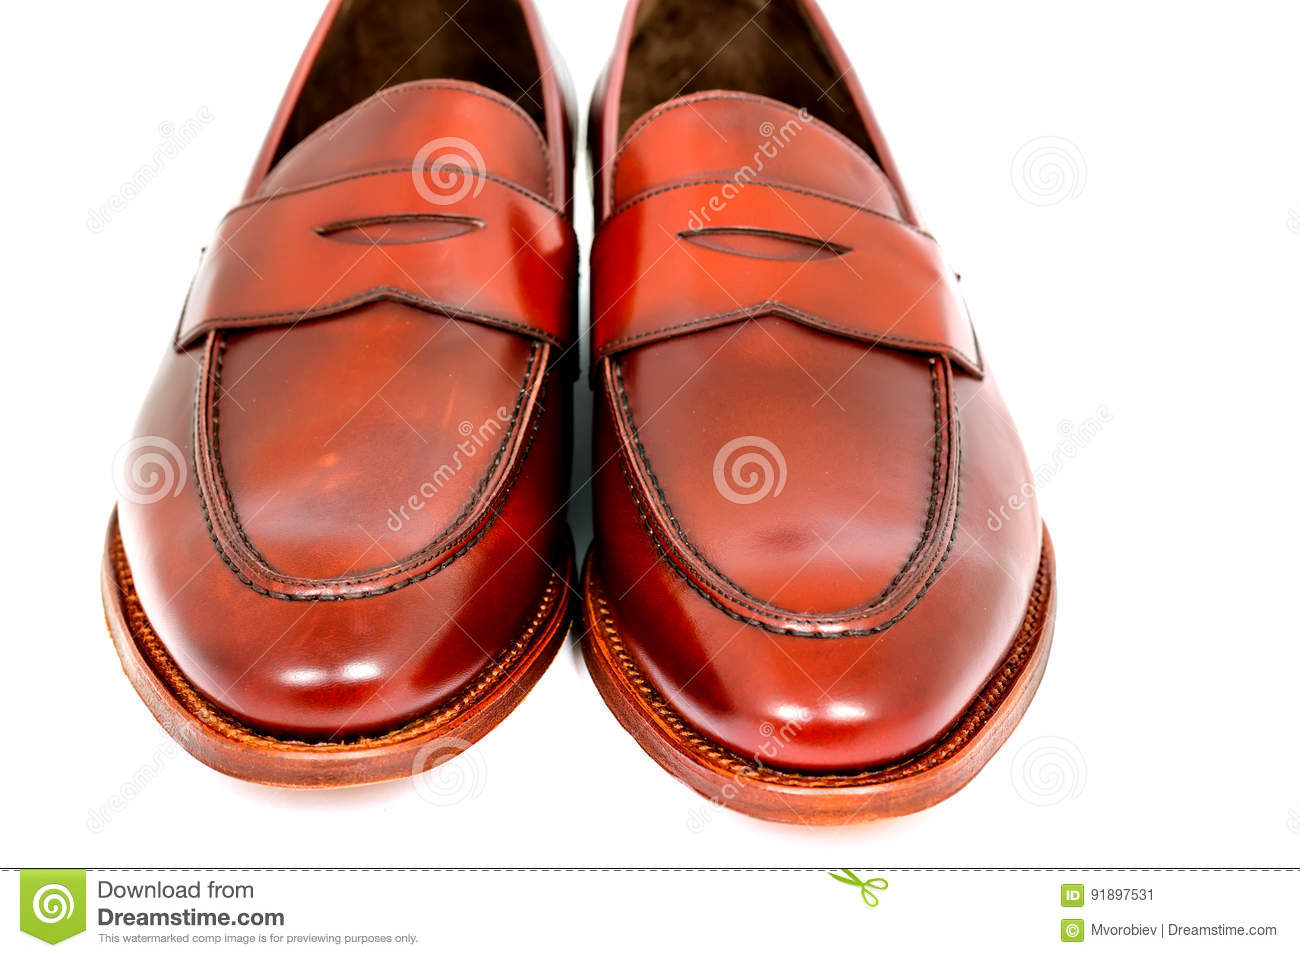 4c7ab39edaf Pair of leather burgundy penny loafer shoes together on white background.  Horizontal image